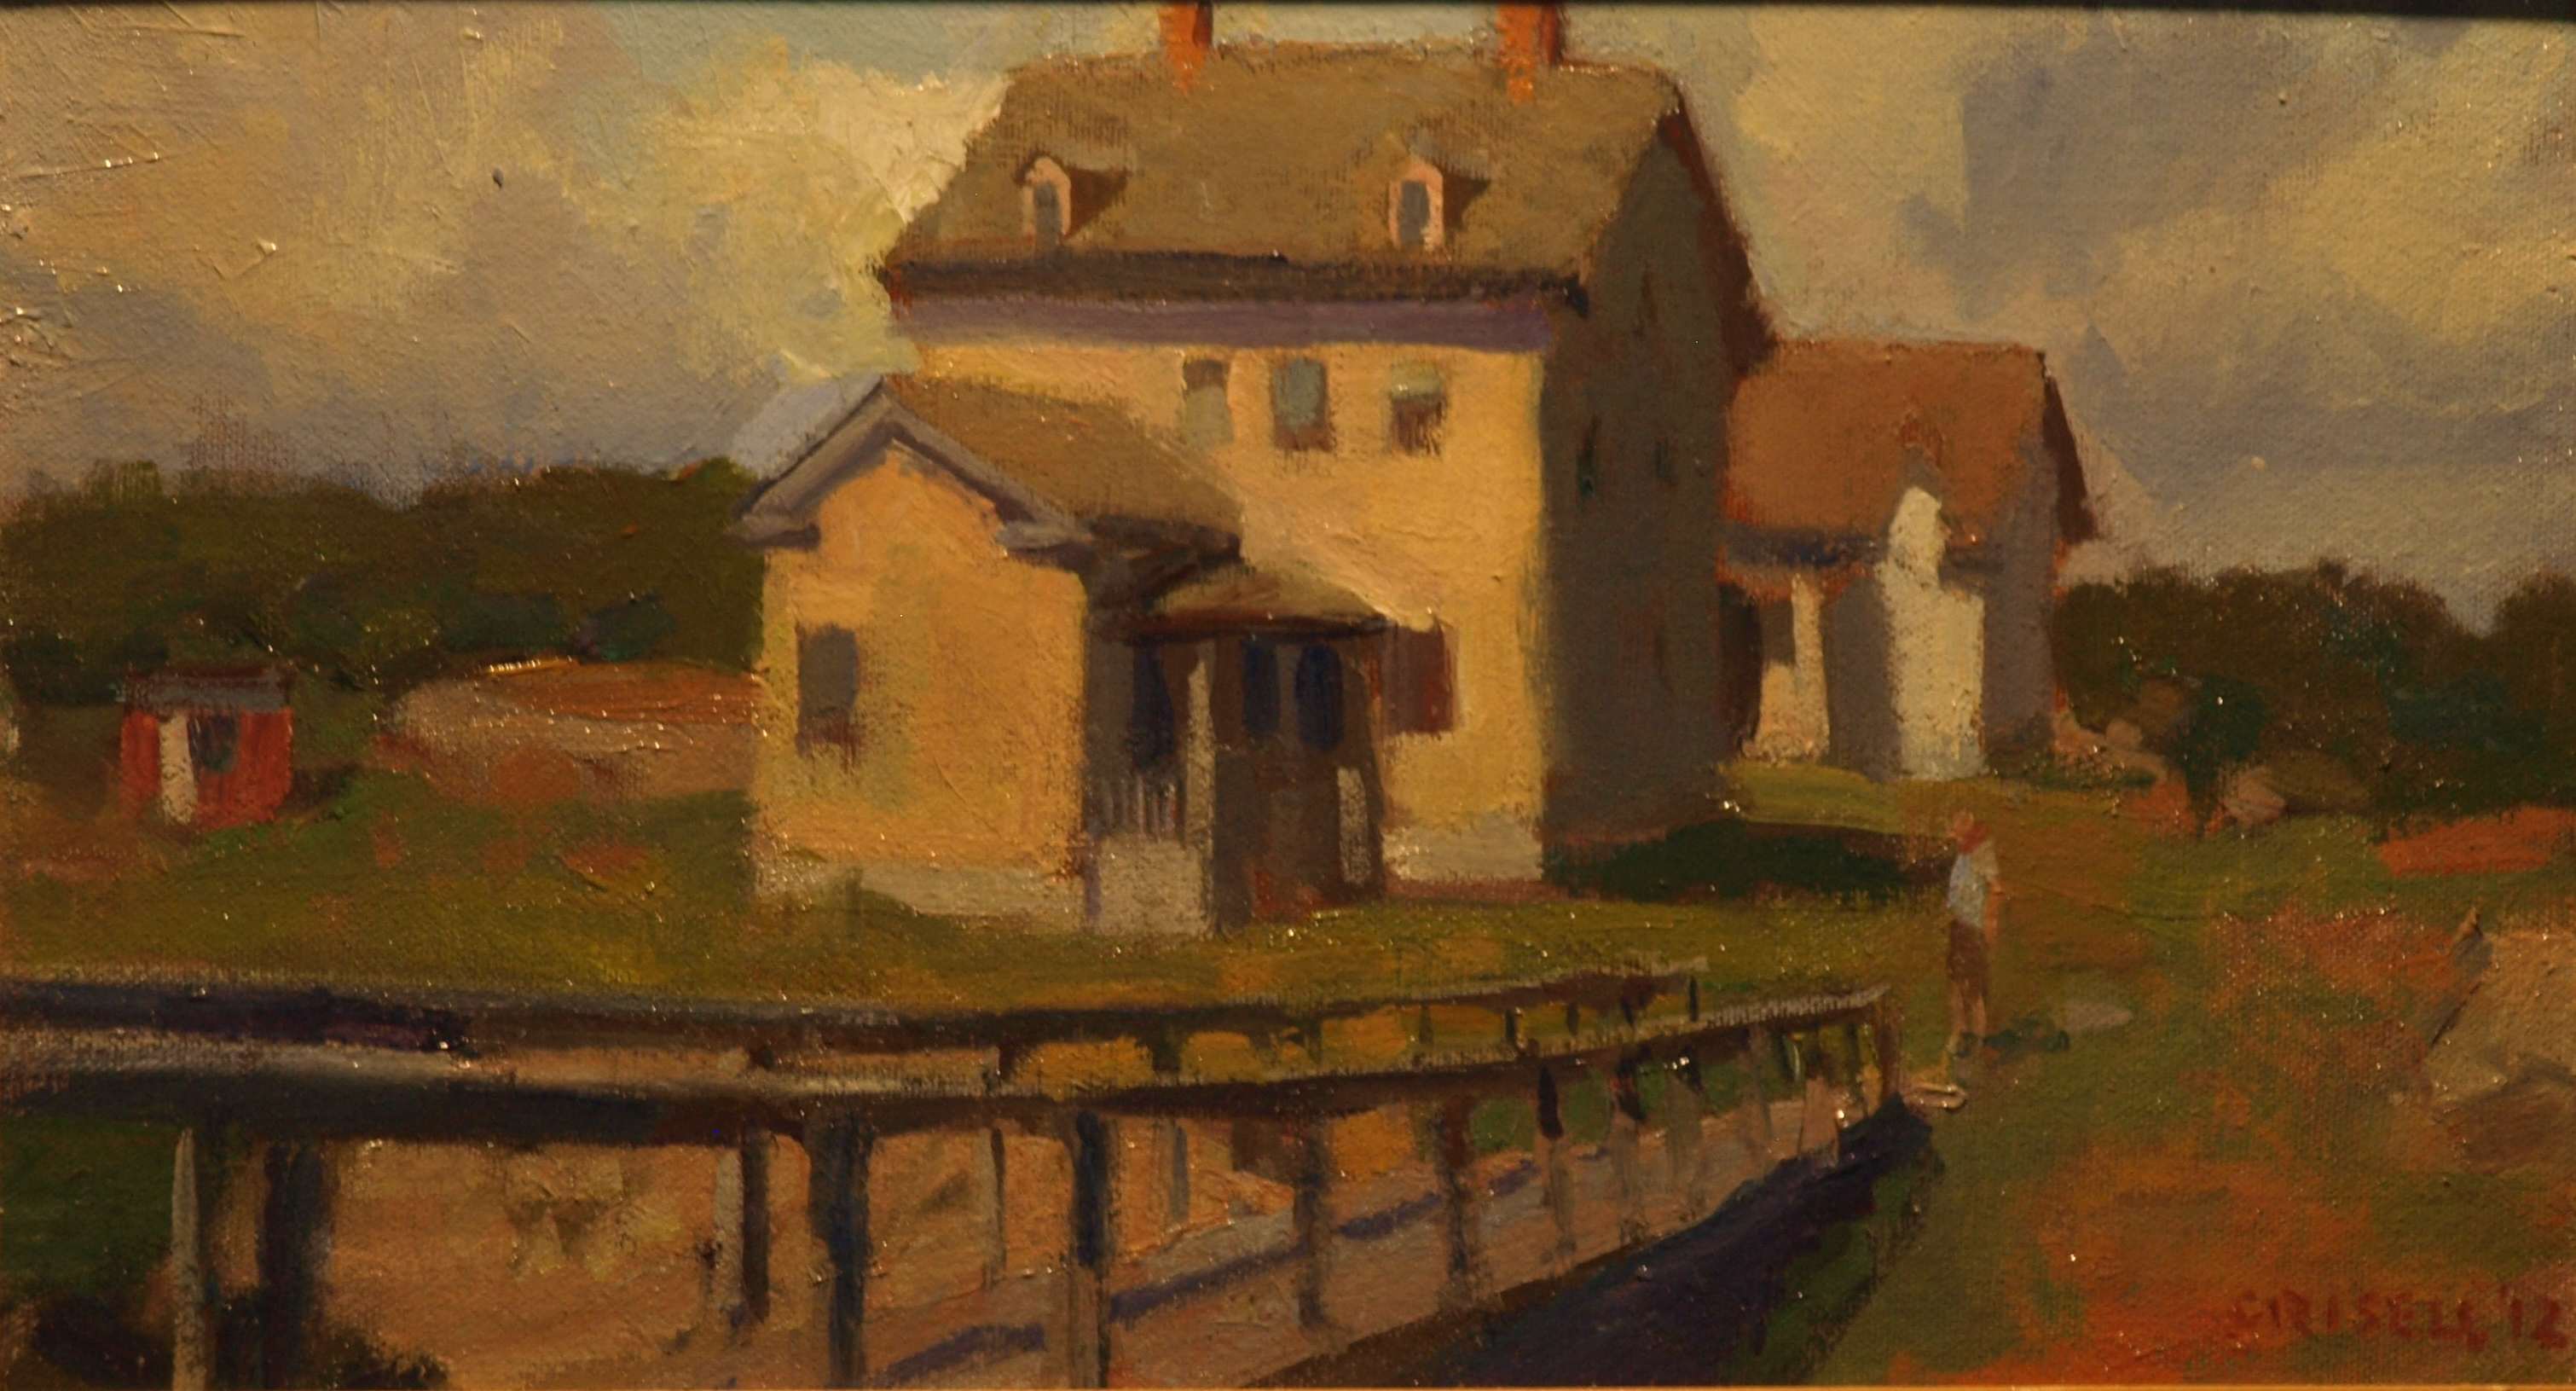 Thatcher Island Building, Oil on Canvas on Panel, 9 x 16 Inches, by Susan Grisell, $250